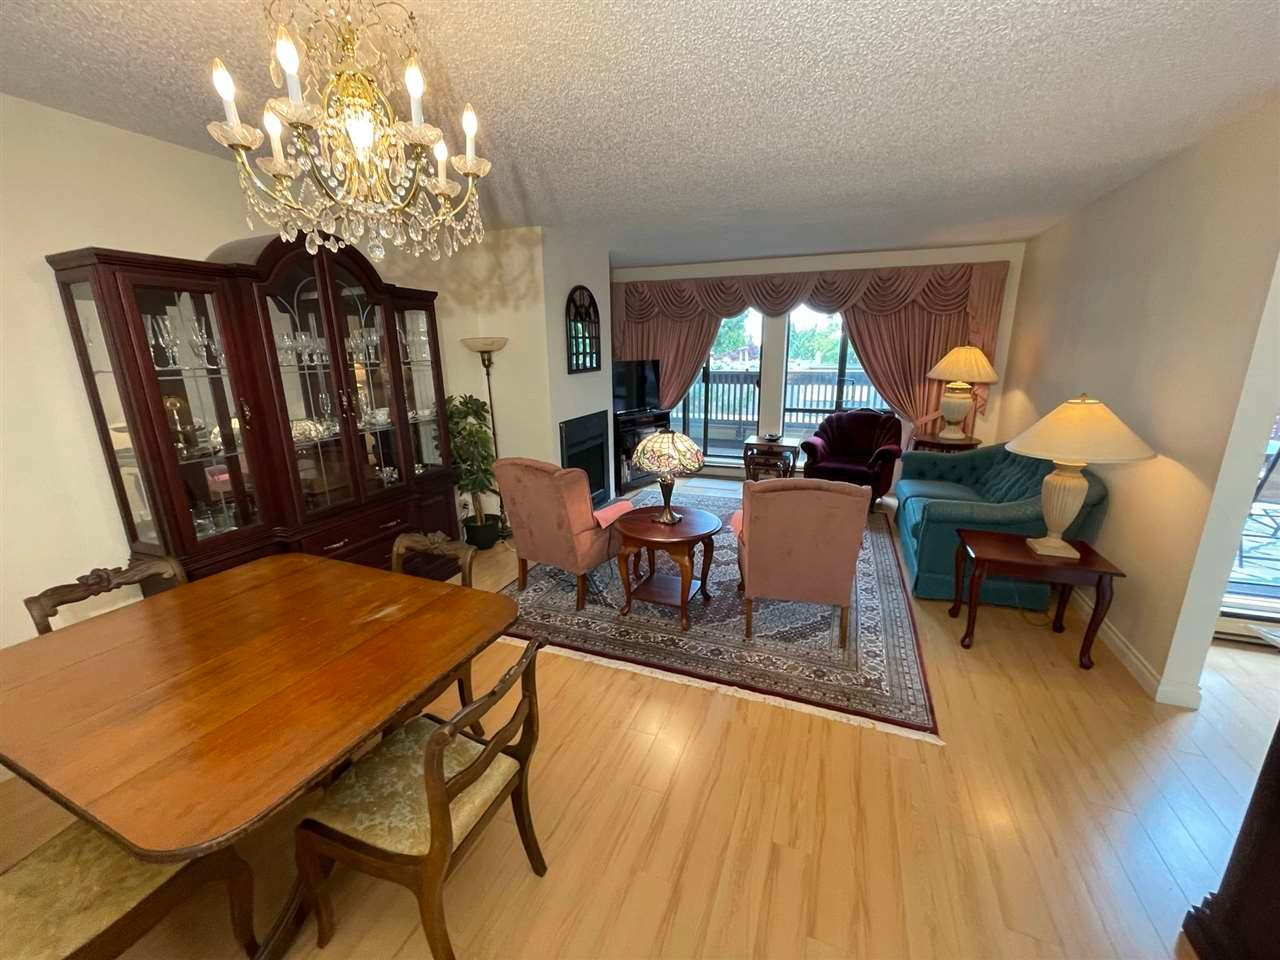 """Main Photo: 301 333 WETHERSFIELD Drive in Vancouver: South Cambie Condo for sale in """"LANGARA COURT"""" (Vancouver West)  : MLS®# R2593558"""